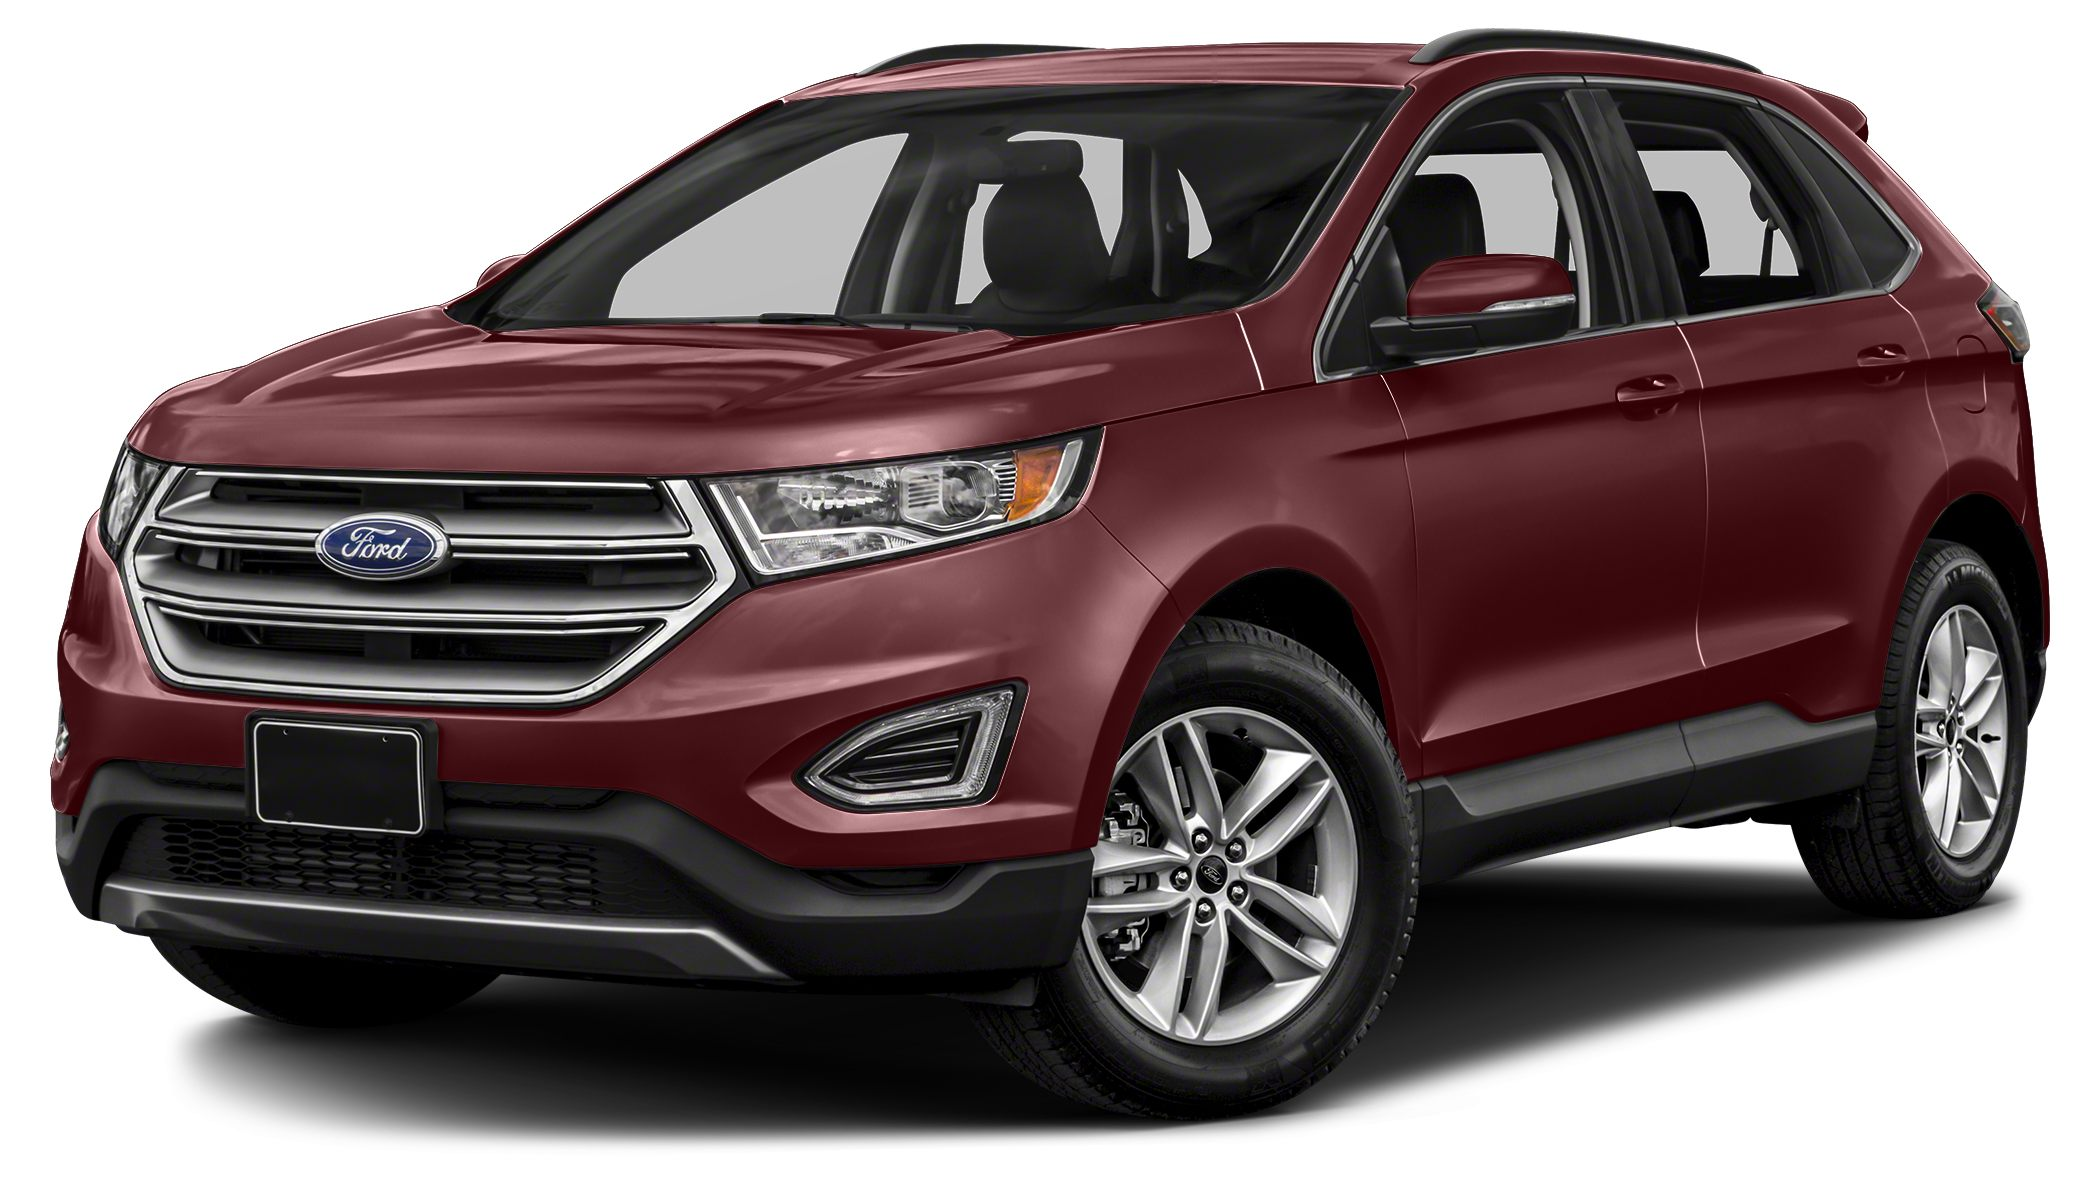 2015 Ford Edge SEL Miles 0Color Ruby Red Metallic Tinted Clearcoat Stock IP-B28238 VIN 2FMTK